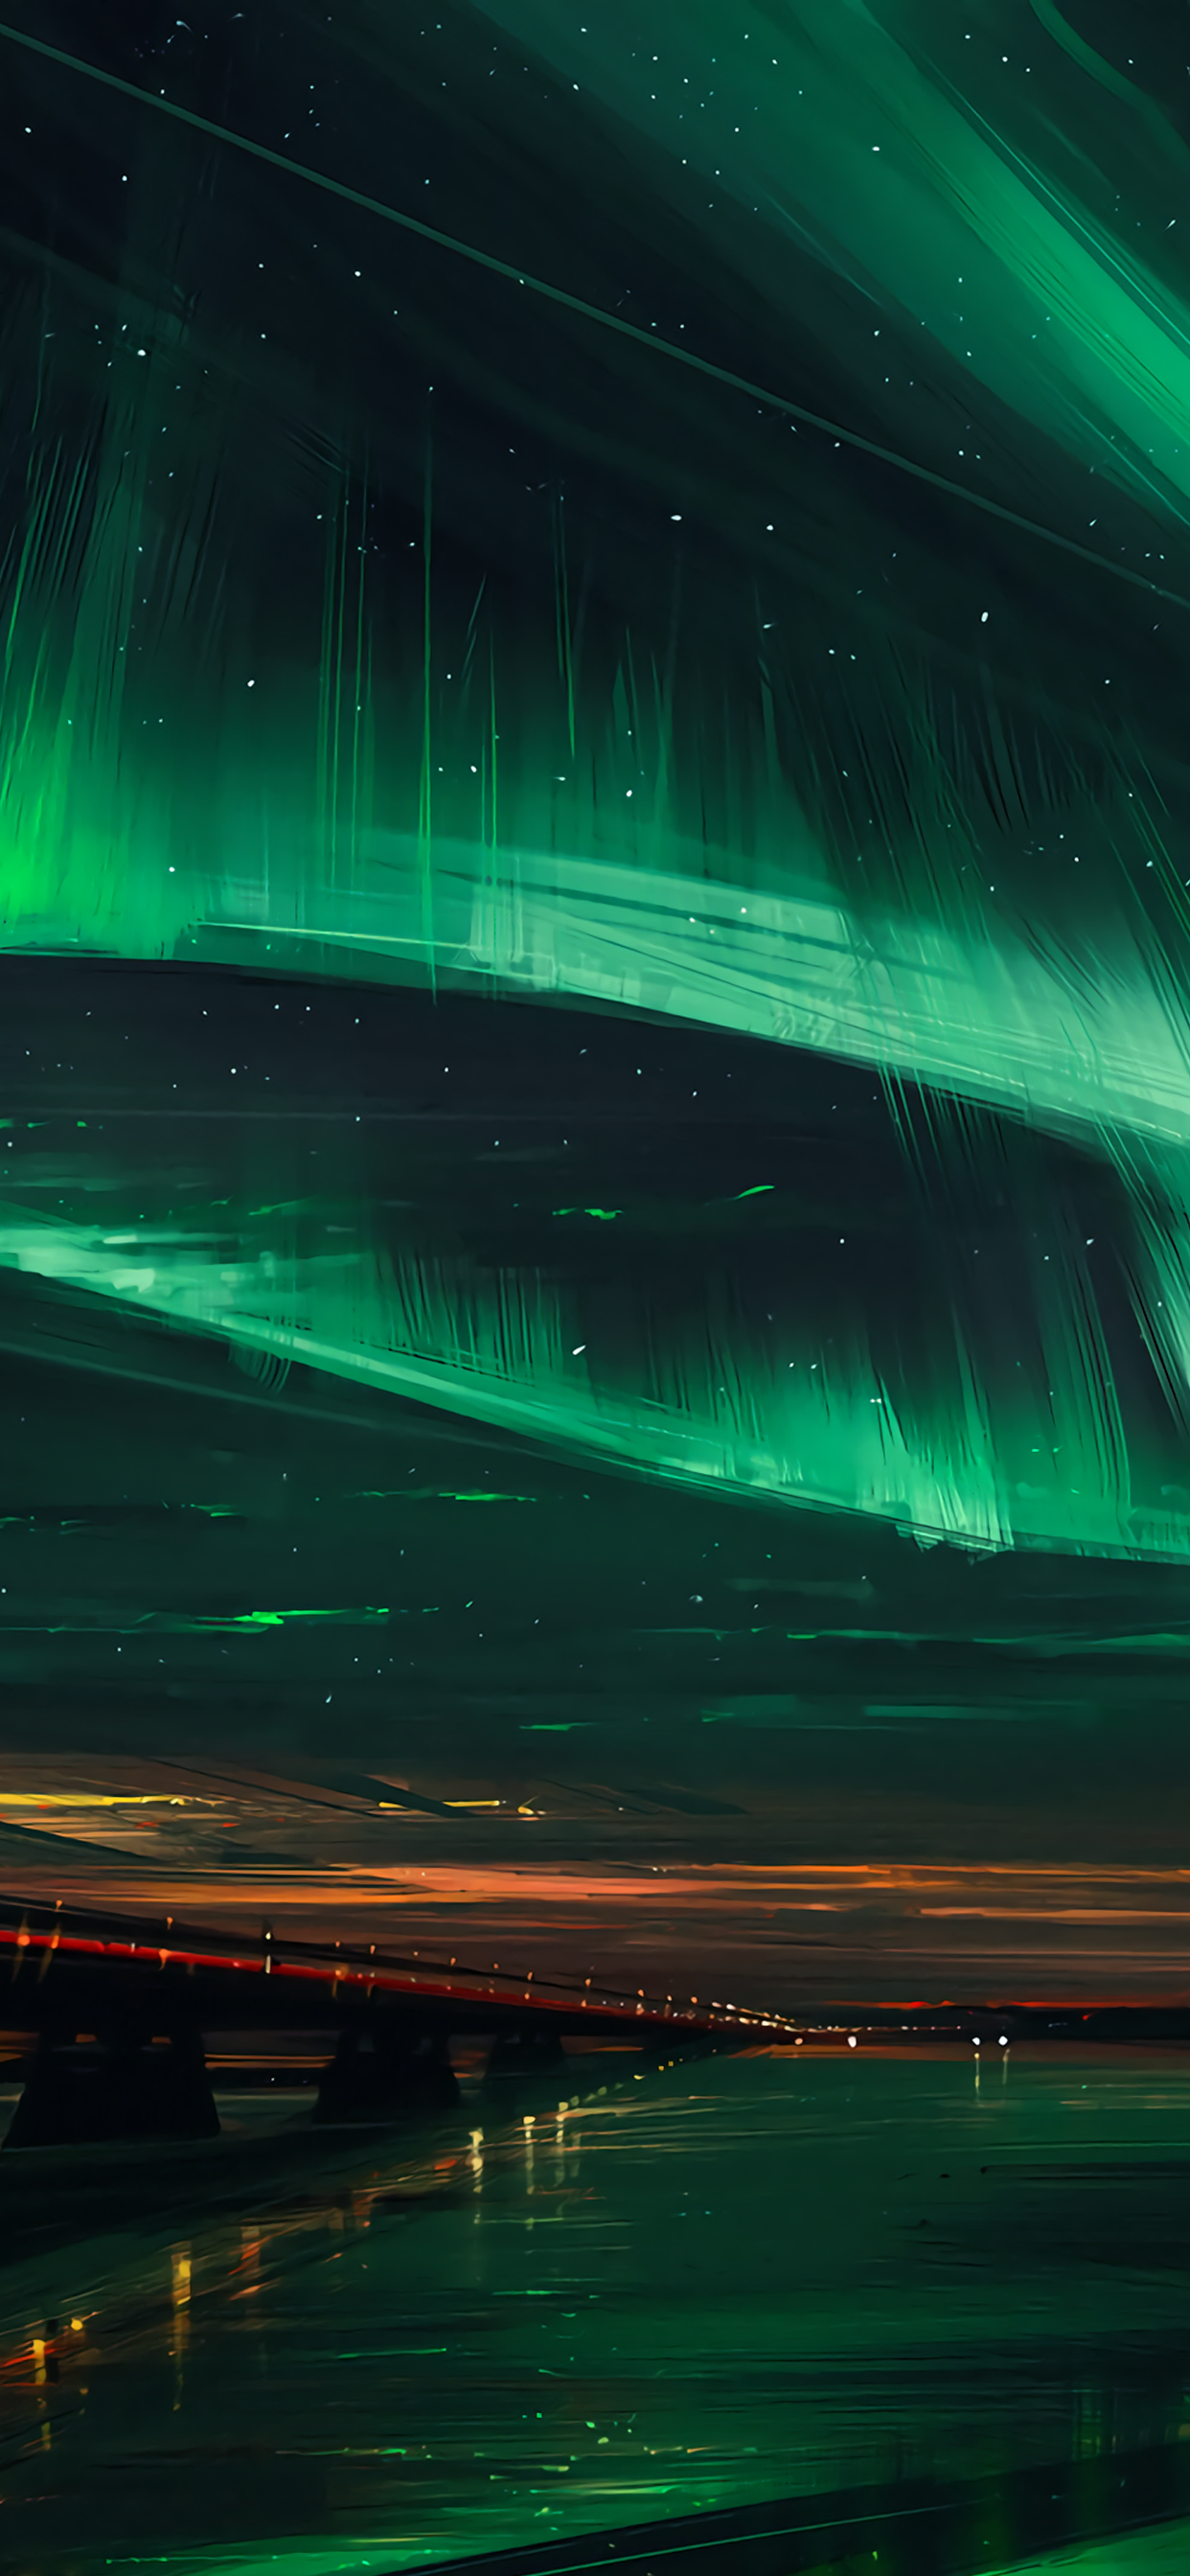 1242x2688 Aurora Borealis Digital Art [1242x2688] [optimized for ...